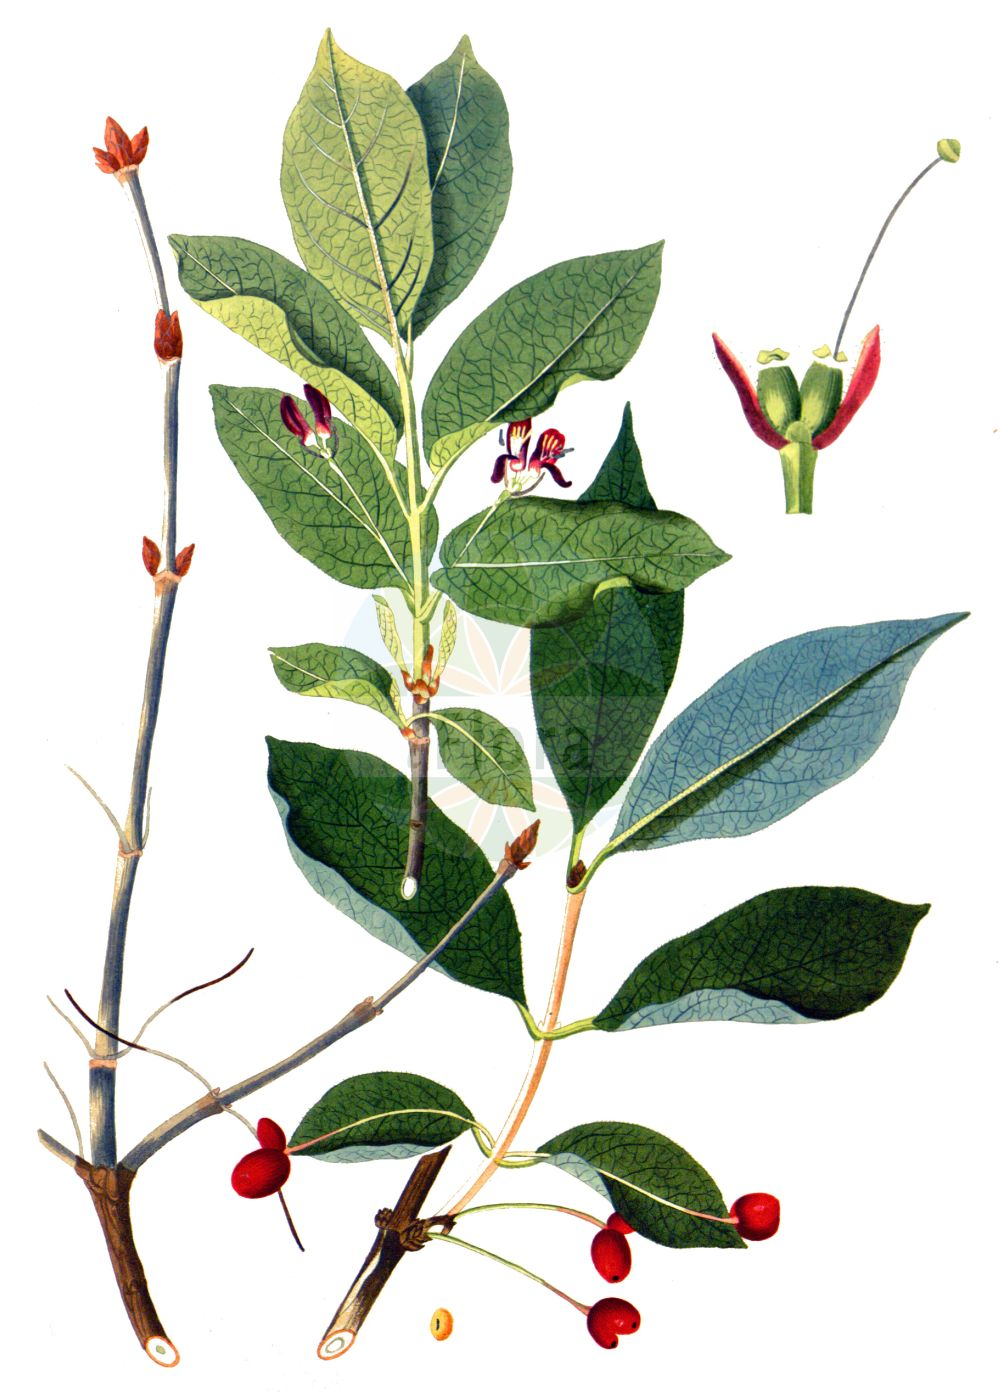 Historische Abbildung von Lonicera alpigena (Alpen-Heckenkirsche - Alpine Honeysuckle). Das Bild zeigt Blatt, Bluete, Frucht und Same. ---- Historical Drawing of Lonicera alpigena (Alpen-Heckenkirsche - Alpine Honeysuckle).The image is showing leaf, flower, fruit and seed.(Lonicera alpigena,Alpen-Heckenkirsche,Alpine Honeysuckle,Lonicera alpigena,Alpen-Heckenkirsche,Alpen-Geissblatt,Alpine Honeysuckle,Cherry Woodbine,Lonicera,Heckenkirsche,Honeysuckle,Caprifoliaceae,Geissblattgewaechse,Honeysuckle family,Blatt,Bluete,Frucht,Same,leaf,flower,fruit,seed,Krauss (1802f))